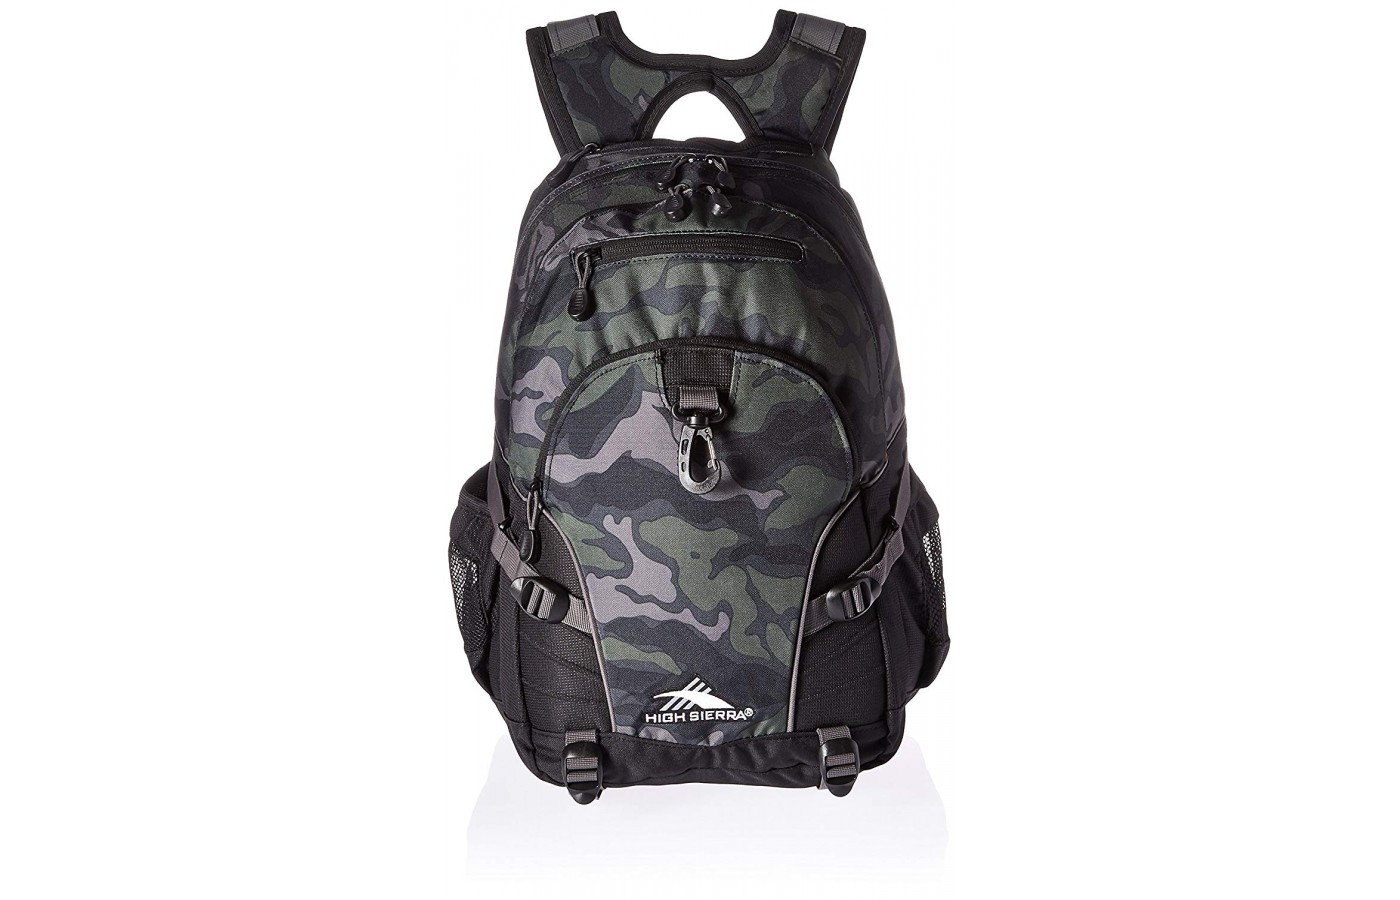 High Sierra offers everything from all black daypacks to packs with camo, butterflies, pineapples, and much more.